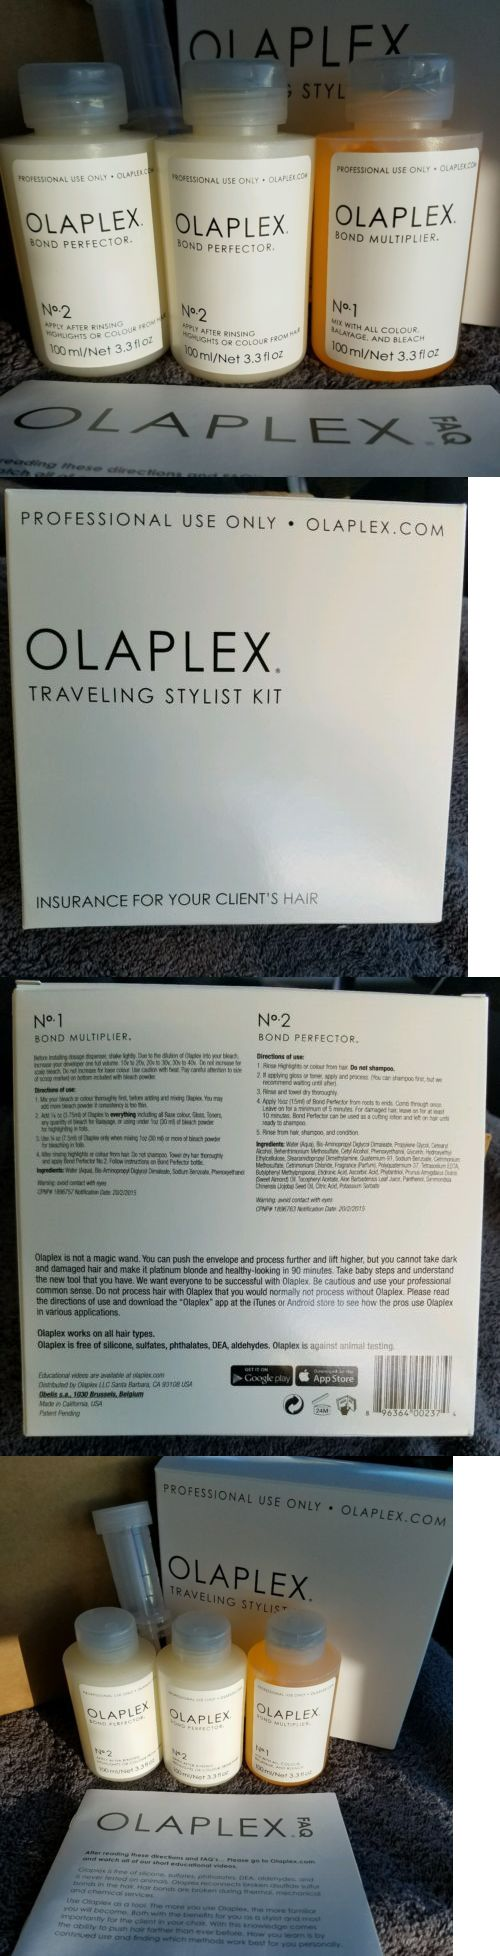 Hair Beauty: Fast Free Shipping! Brand New 3Pc Set Olaplex Traveling Kit - Steps 1 And 2 -> BUY IT NOW ONLY: $62.0 on eBay!